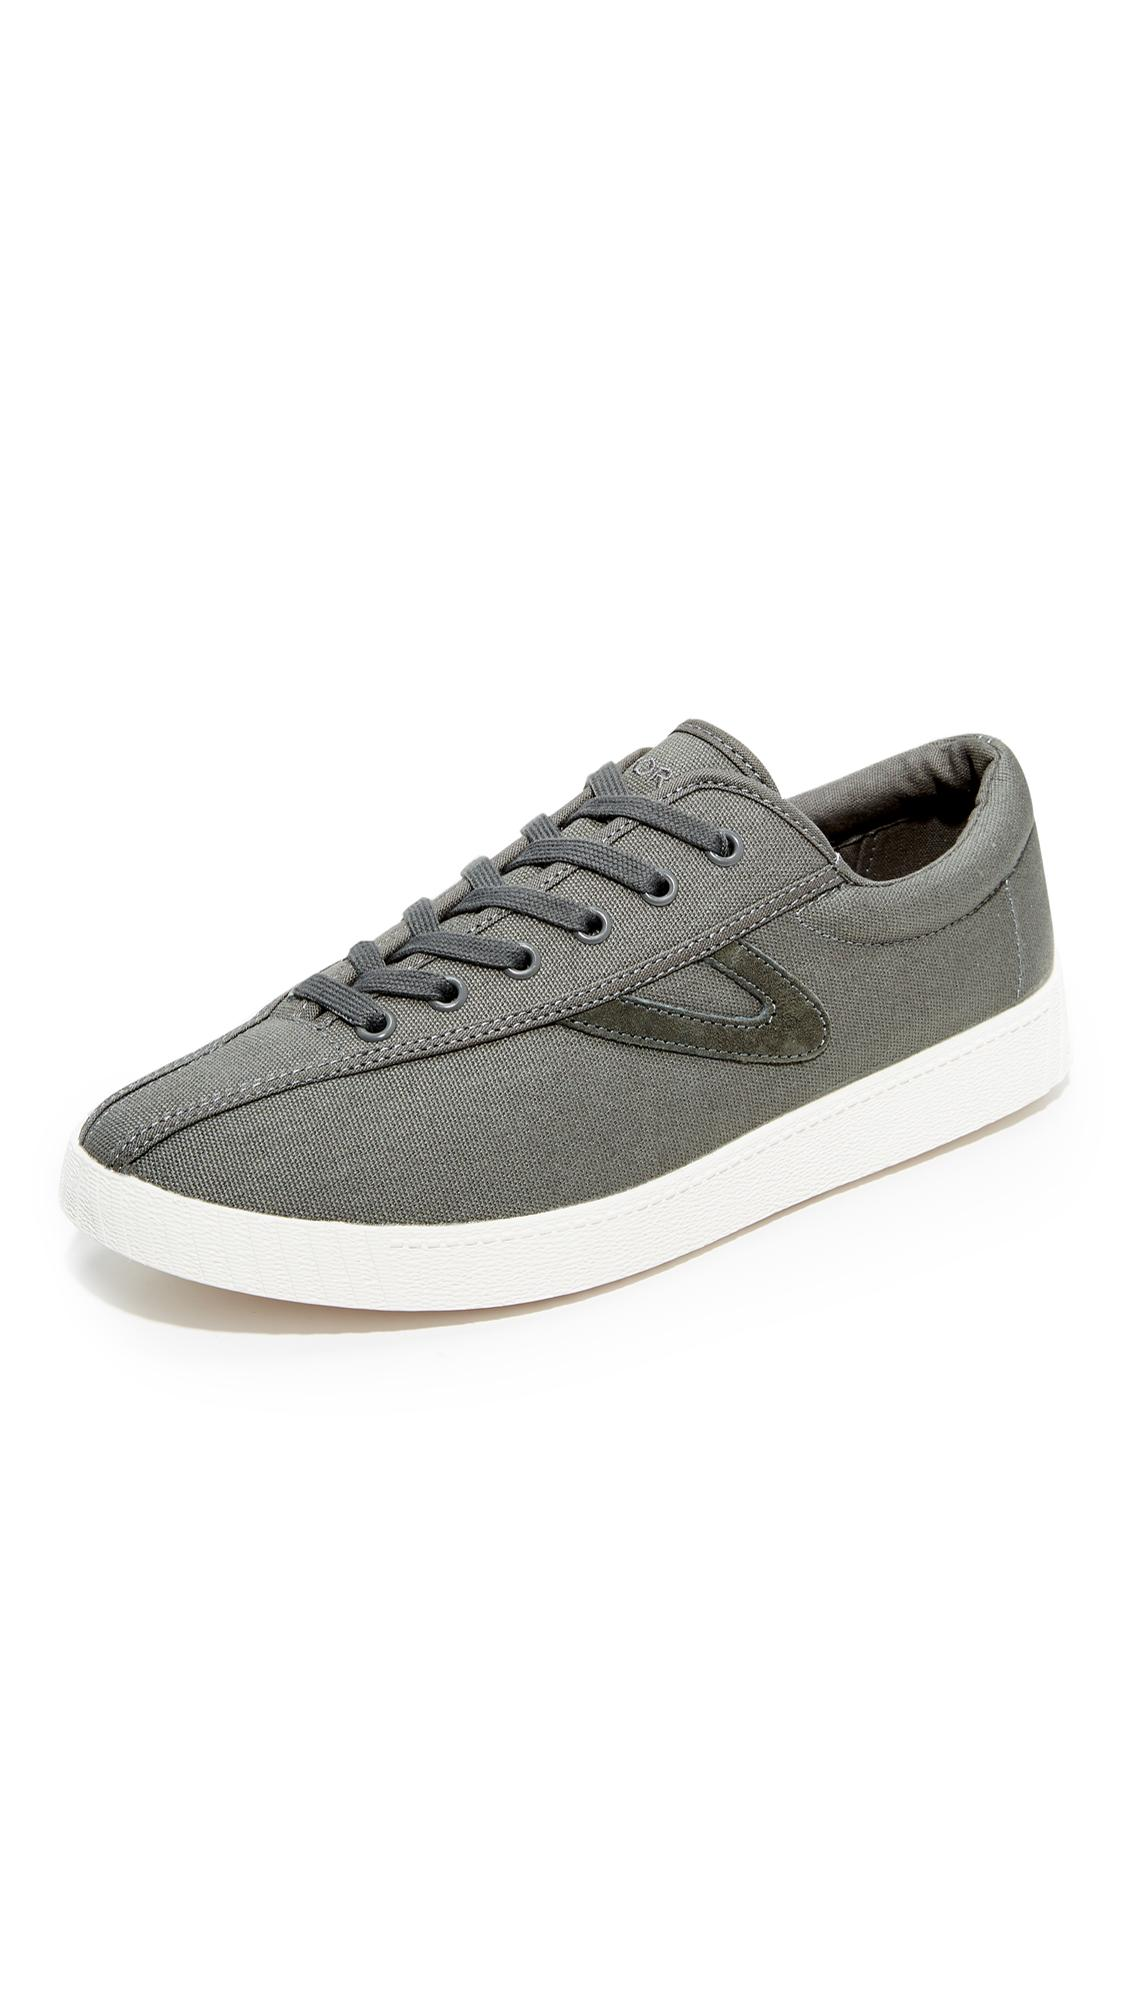 Tretorn Nylite Plus Sneakers In Black Washed Camo